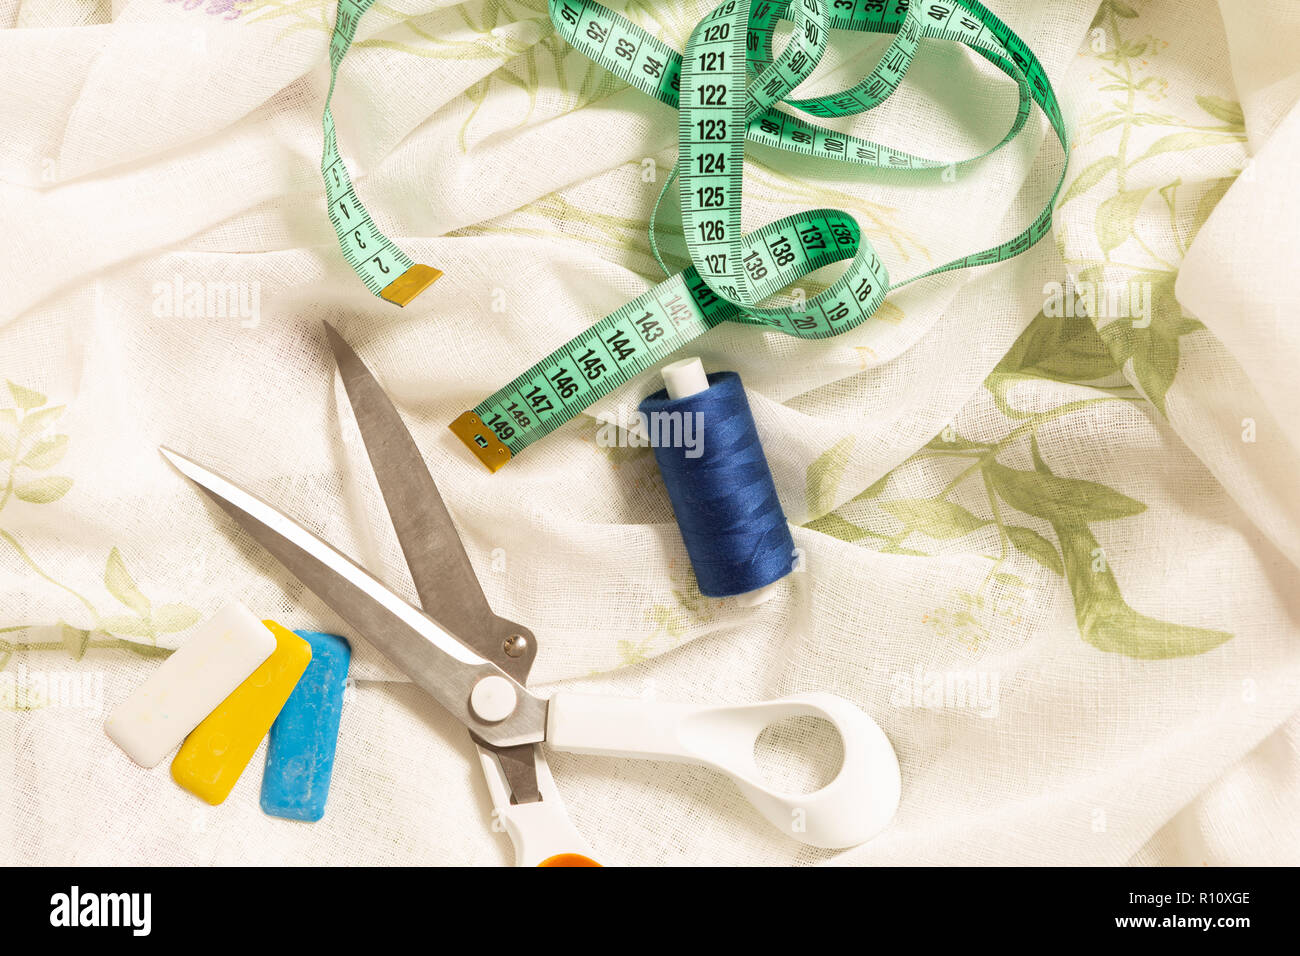 Sewing articles such as scissors thread chalk and measuring tape on fabric for curtain - Stock Image